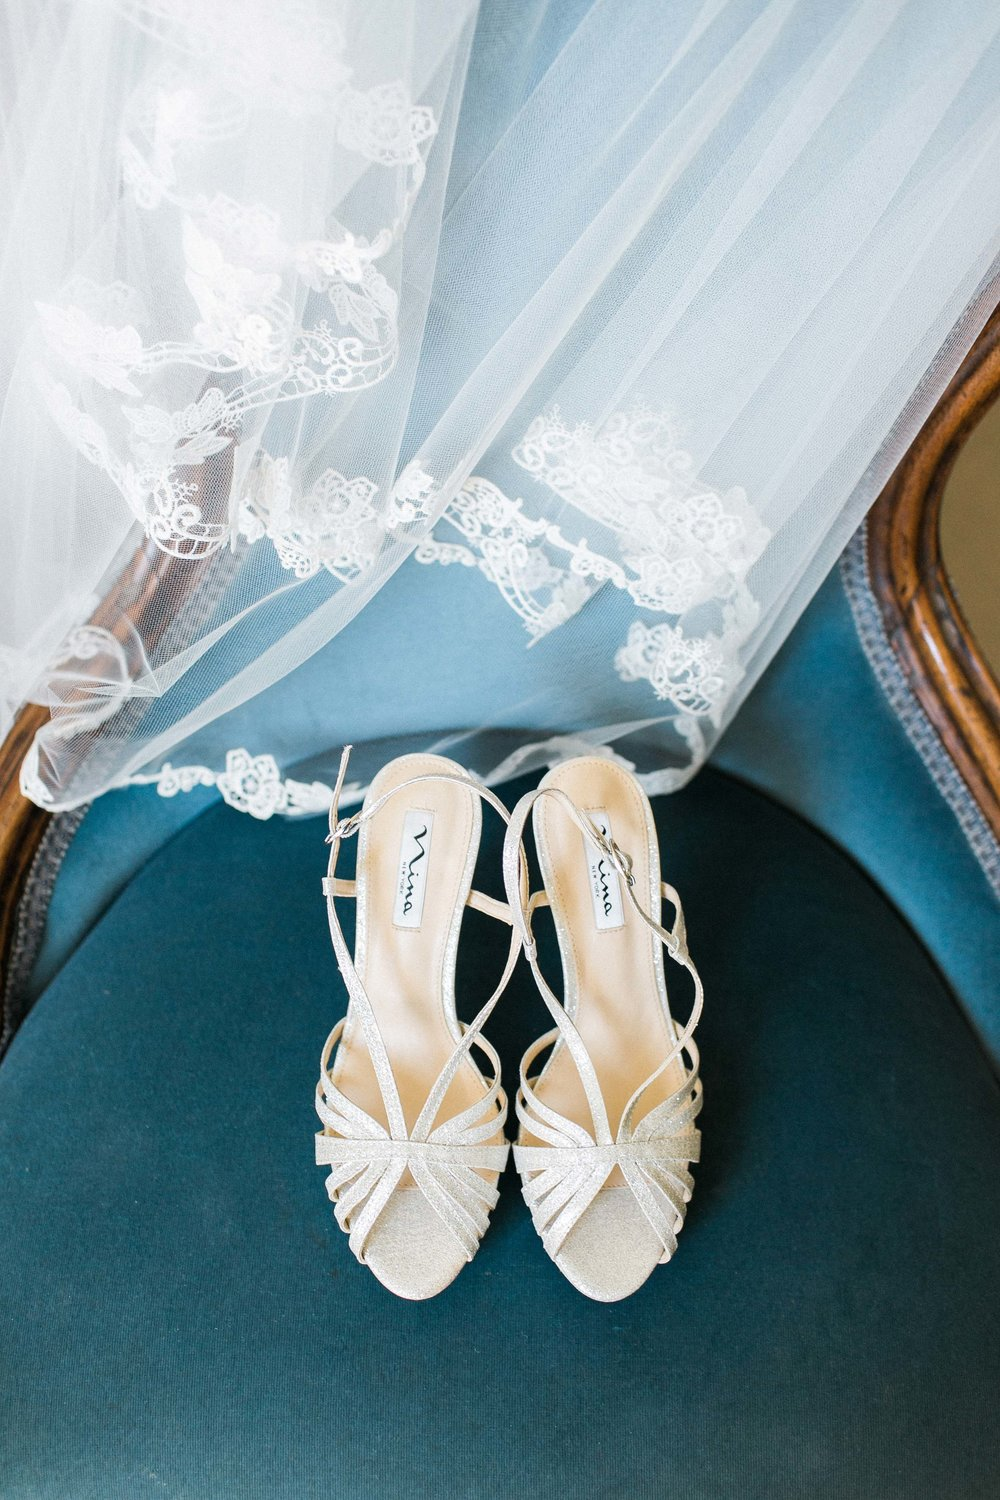 Bride's white wedding shoes and veil